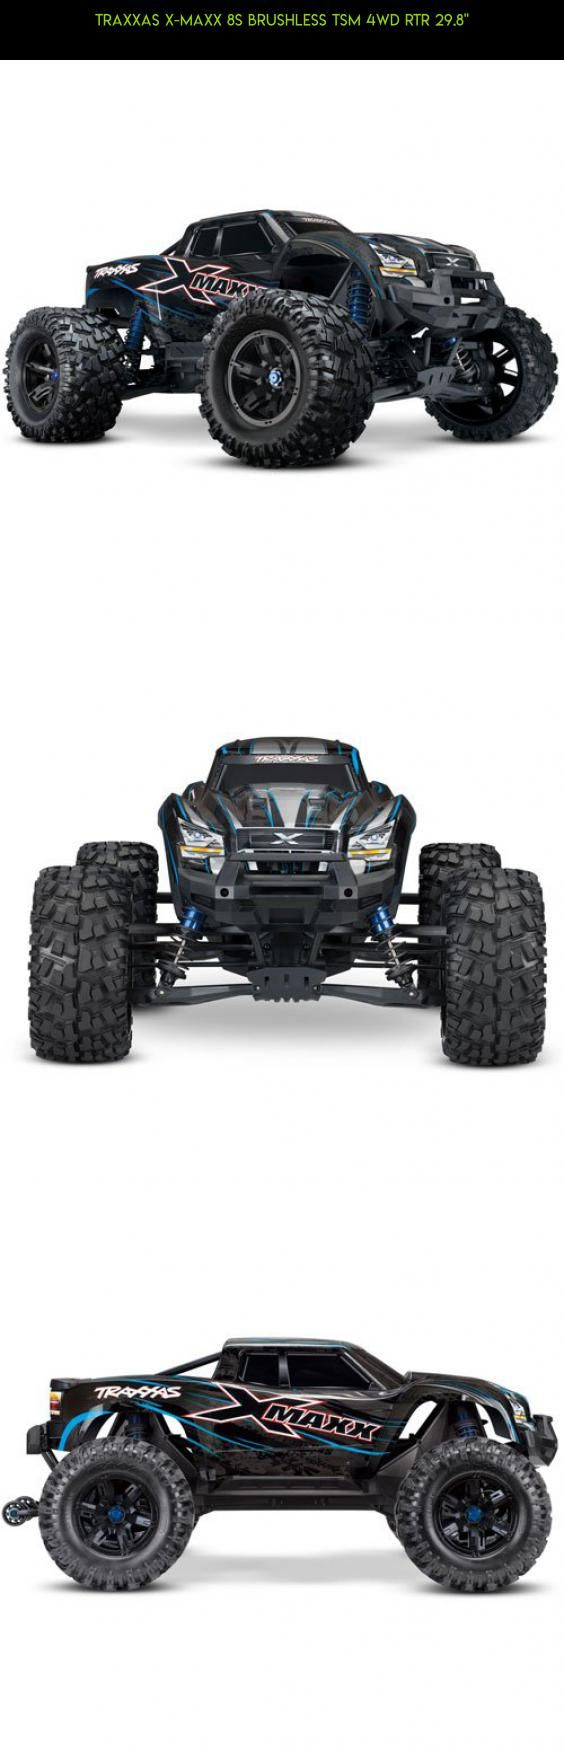 "Traxxas X-Maxx 8S Brushless TSM 4WD RTR 29.8"" #racing #parts #tech #kit #drone #traxxas #products #x-maxx #plans #camera #gadgets #shopping #technology #fpv #8s"